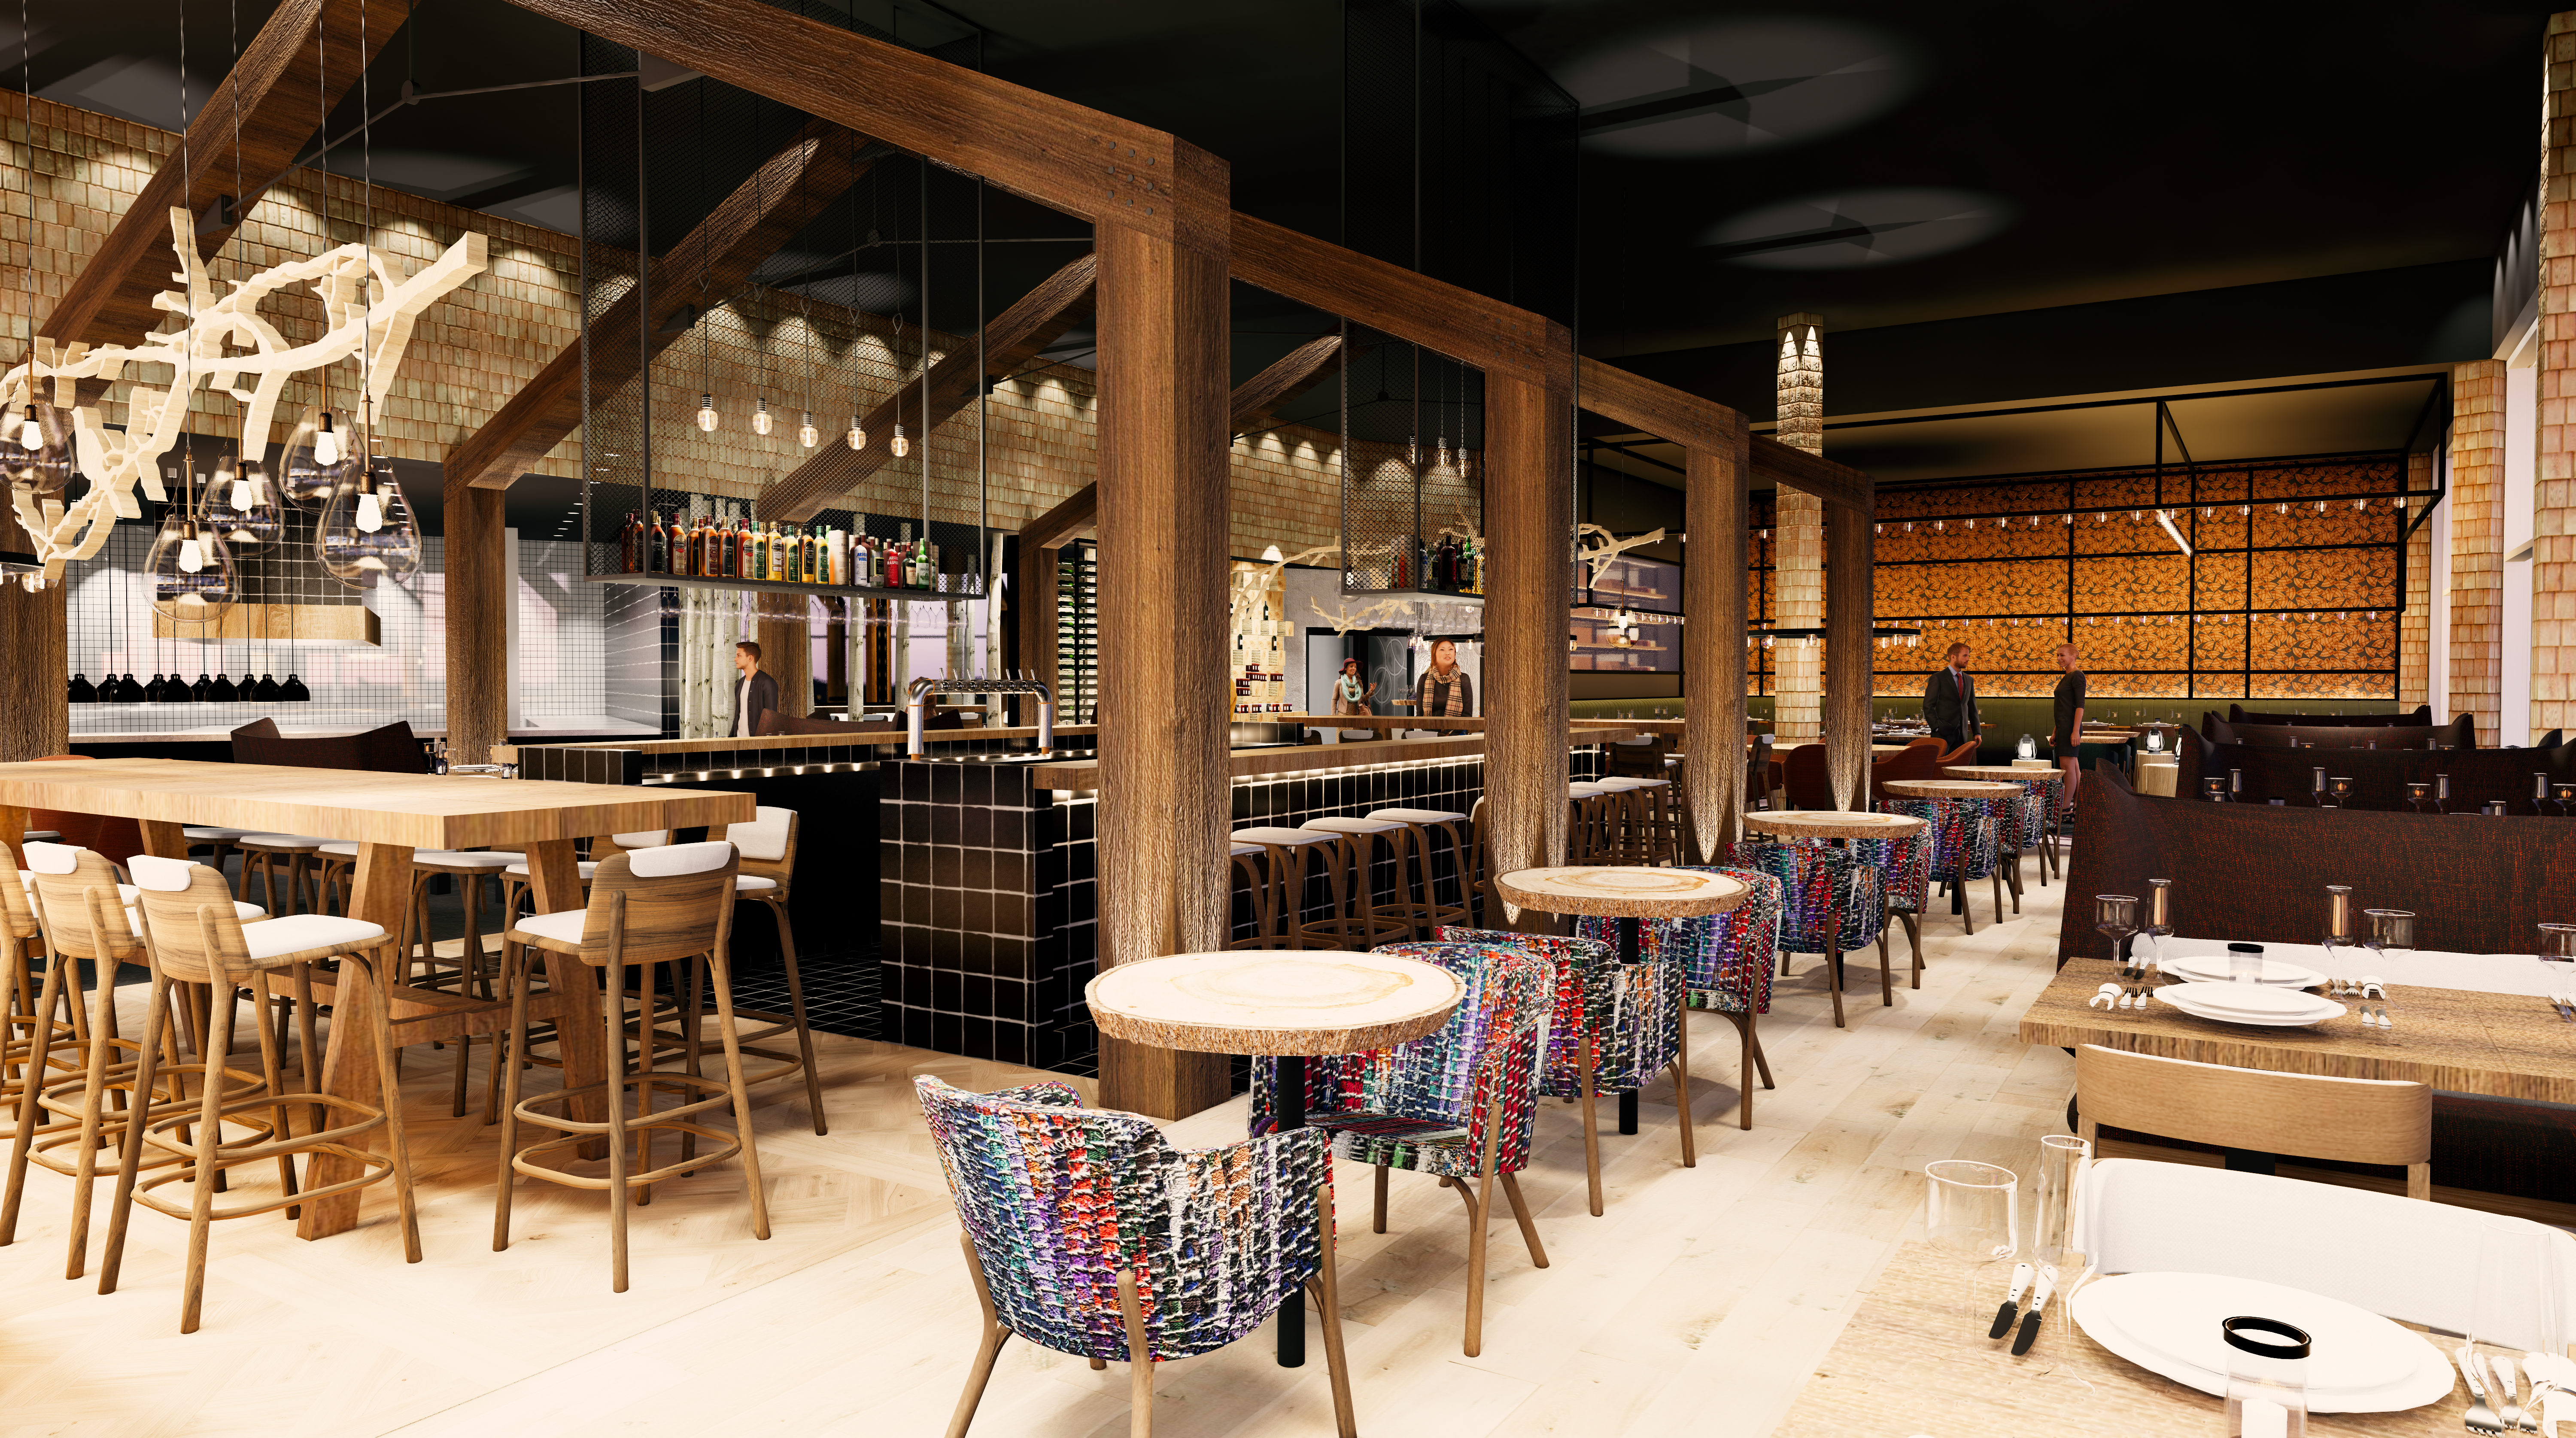 Beneath exposed wooden beams, the lounge has a large central bar topped with huge branches.